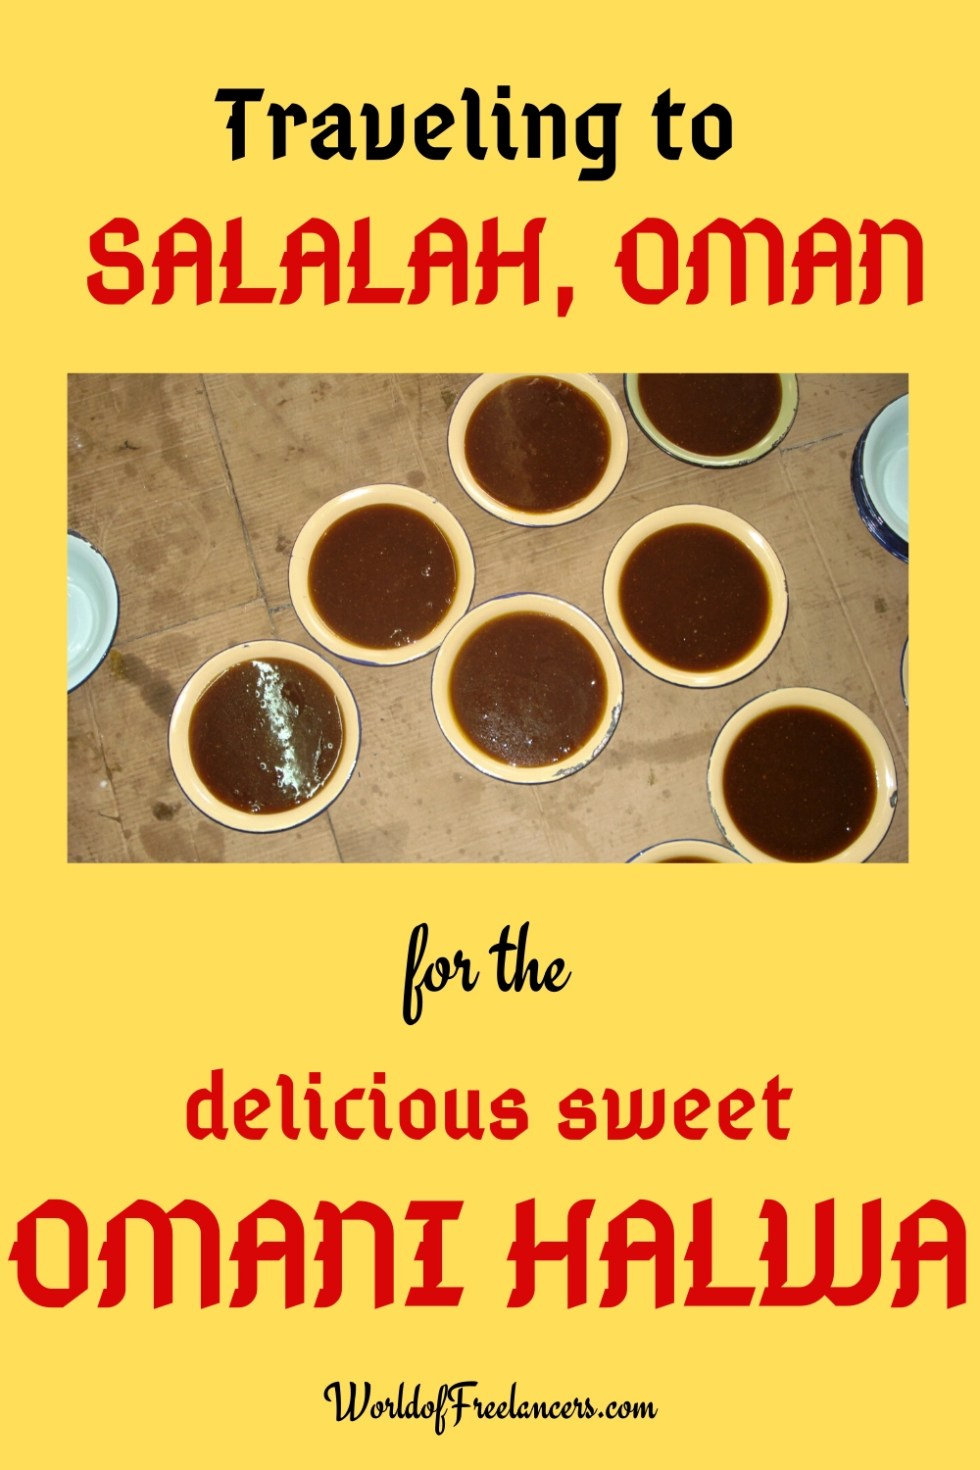 Traveling to Salalah, Oman for the delicious sweet Omani Halwa